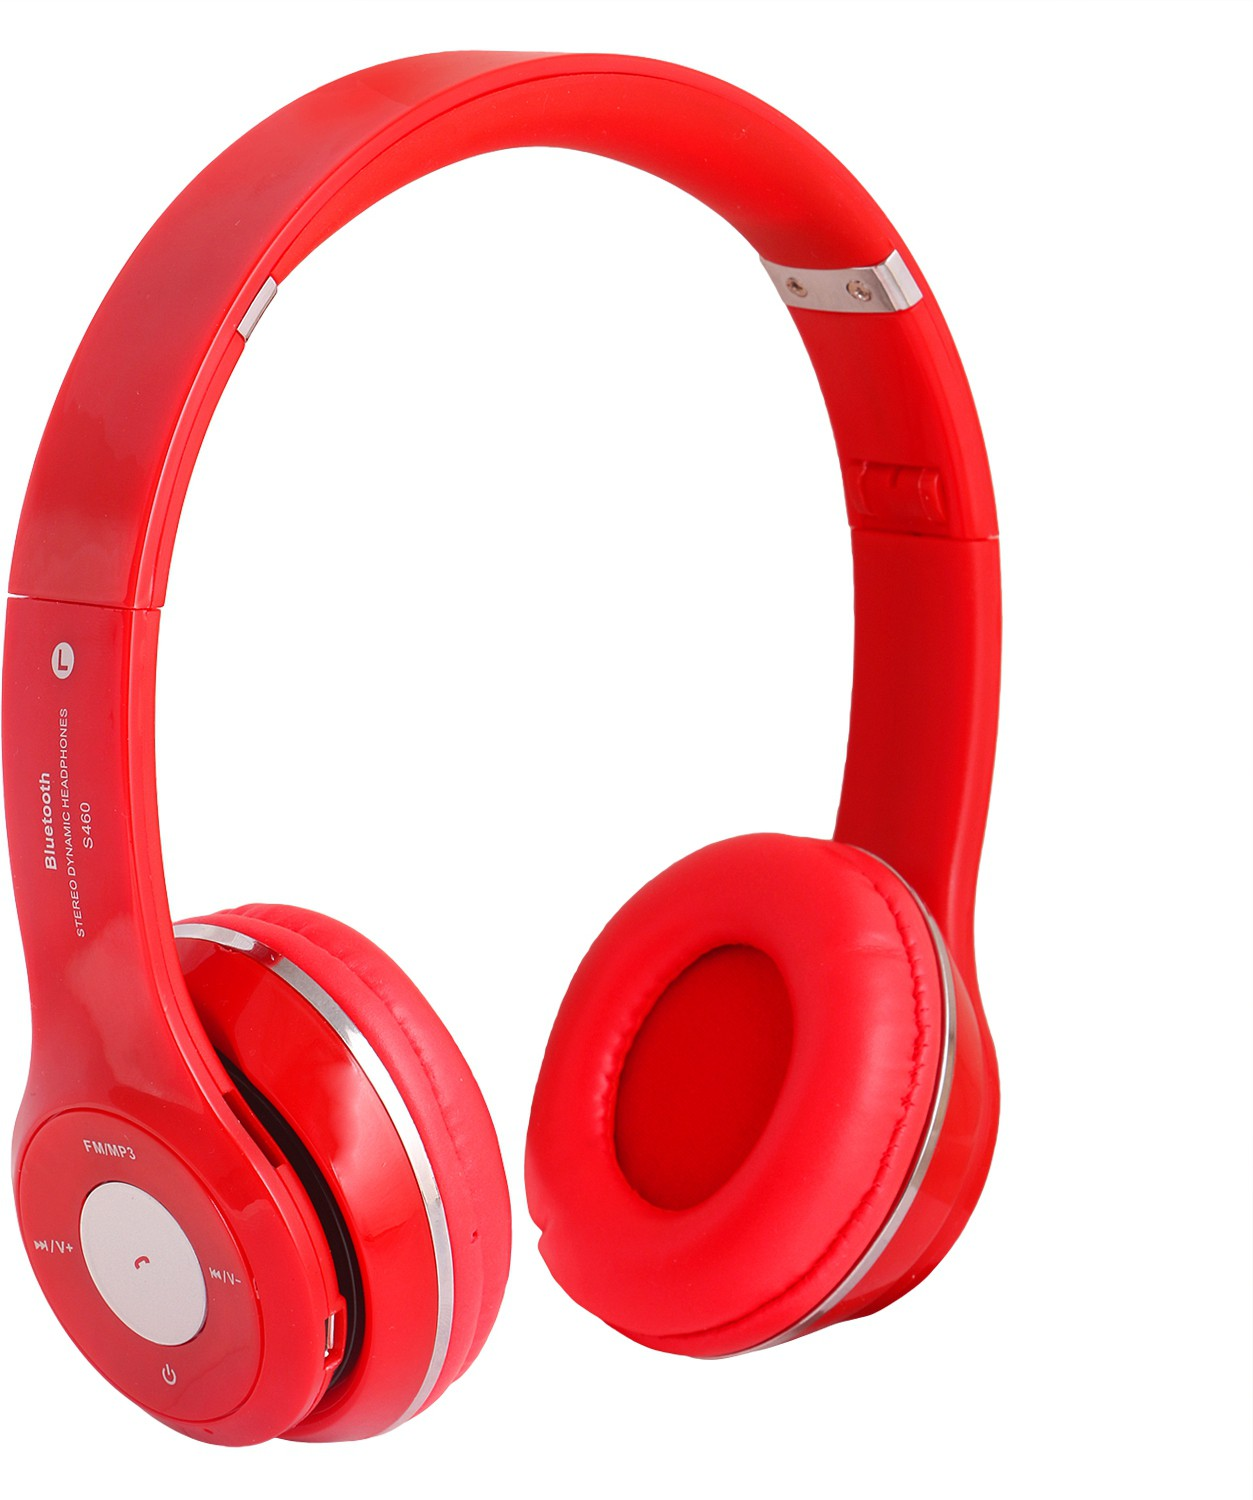 REJUVENATE S460 WIRED & WIRELESS WITH TF CARD SUPPORT Wired & Wireless Bluetooth Gaming Headset With Mic(Red)